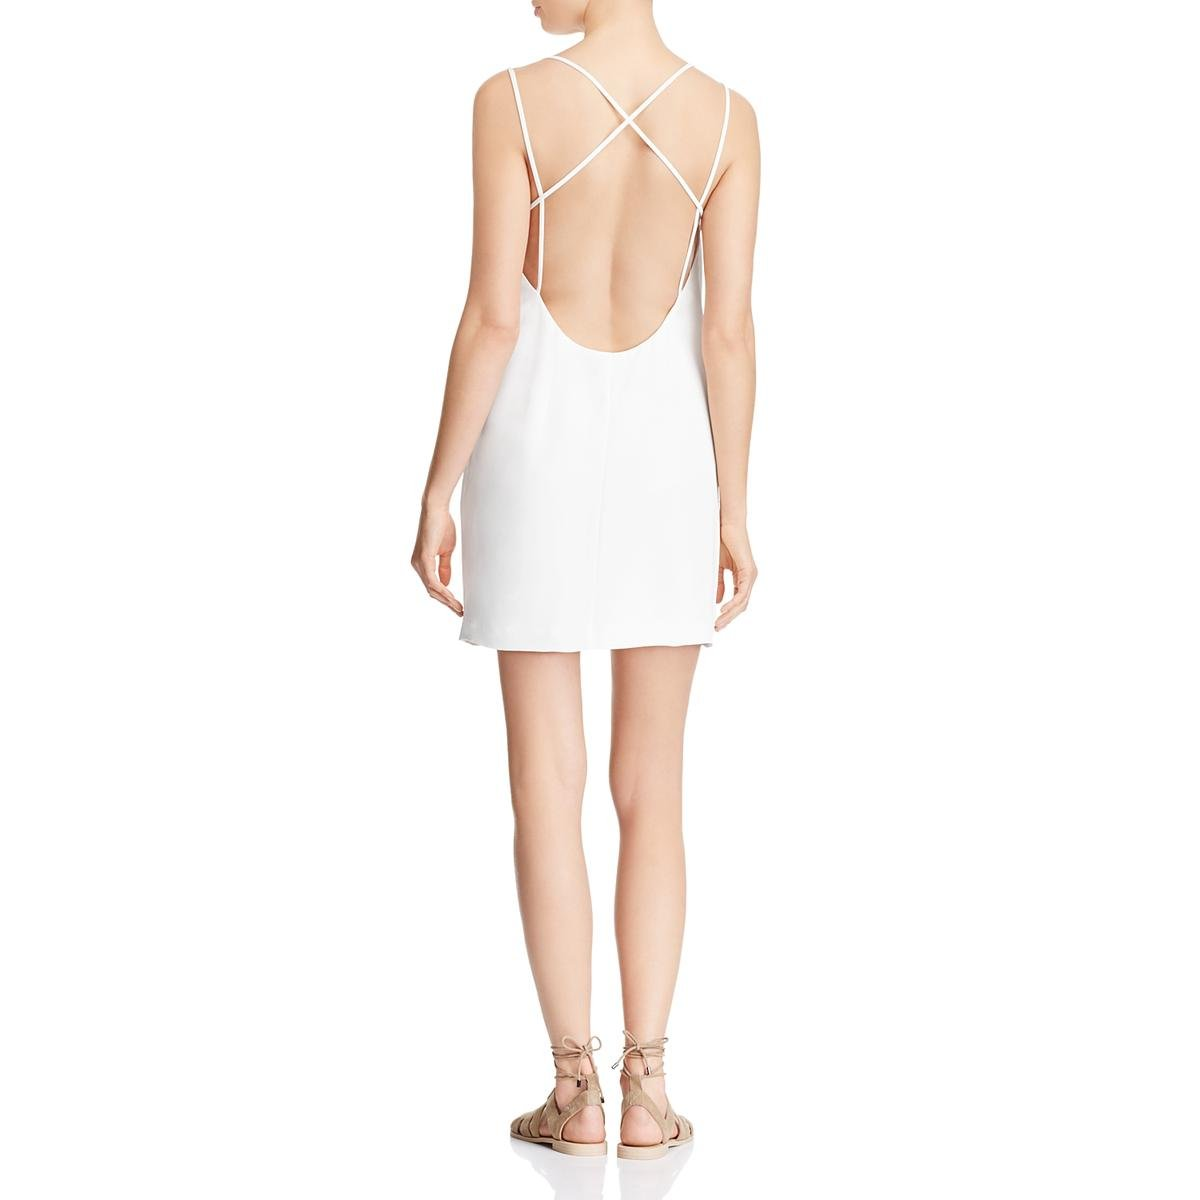 French Connection Womens Crepe Open Back Mini Dress White 10 by French Connection (Image #2)